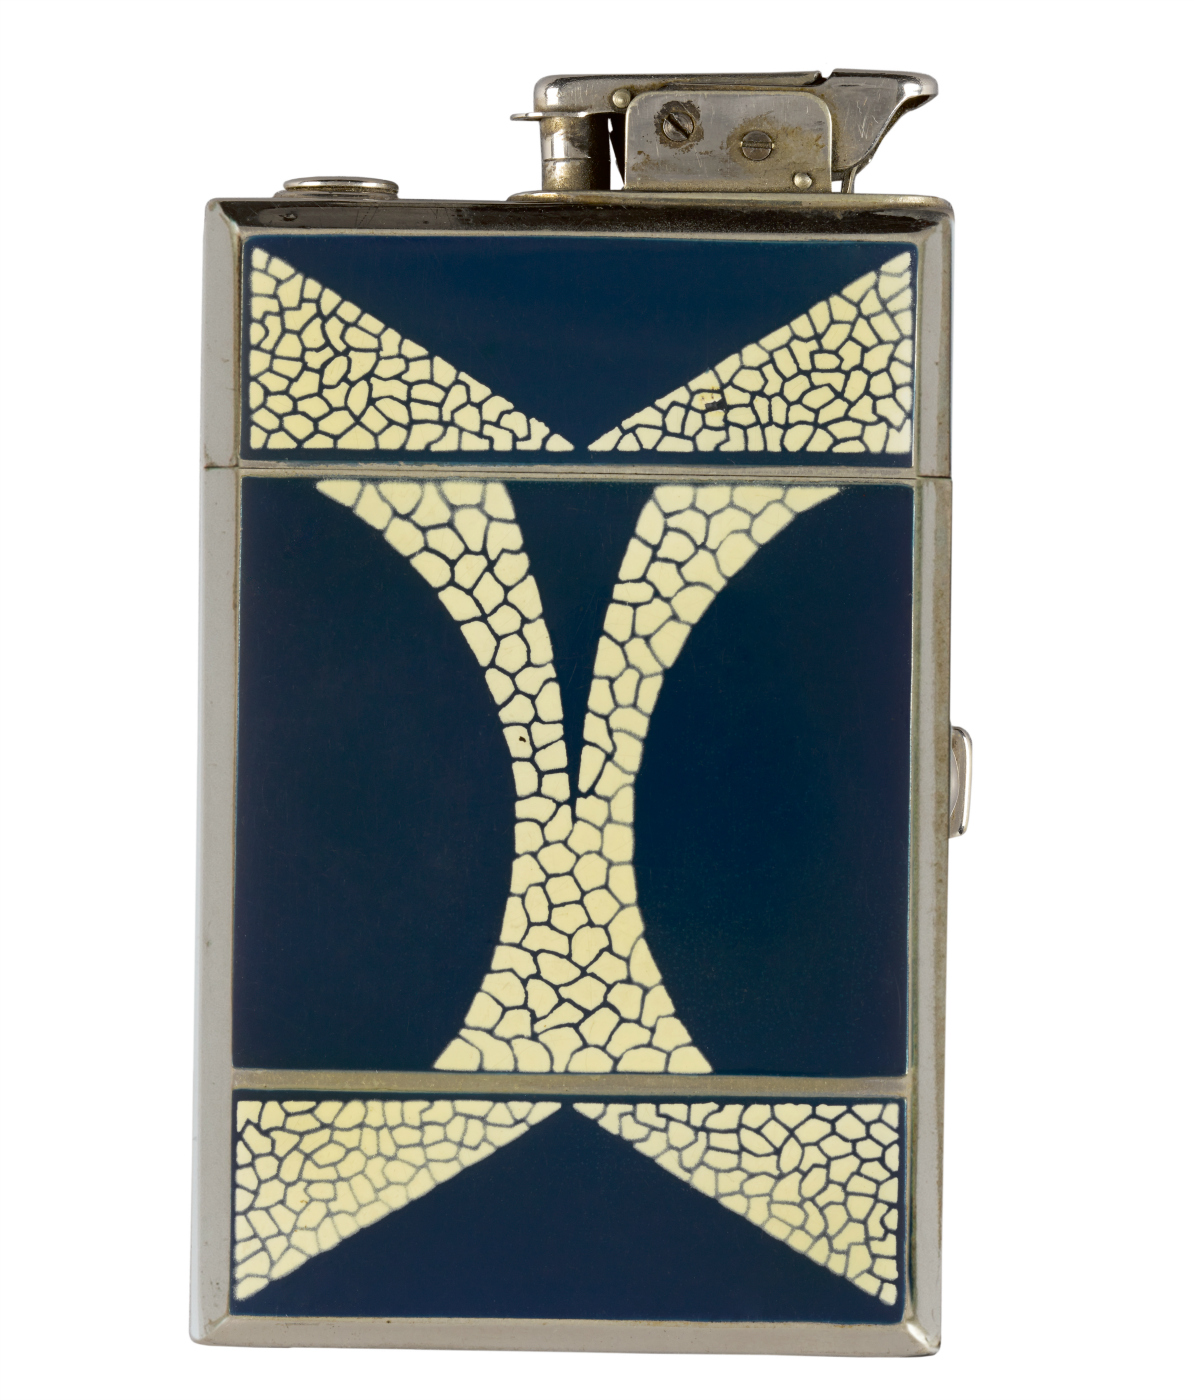 Golden Wheels combination lighter and cigarette case (United States, 1932), produced by Henry Lederer, Providence, Rhode Island (© Rodney and Diana Capstick-Dale)